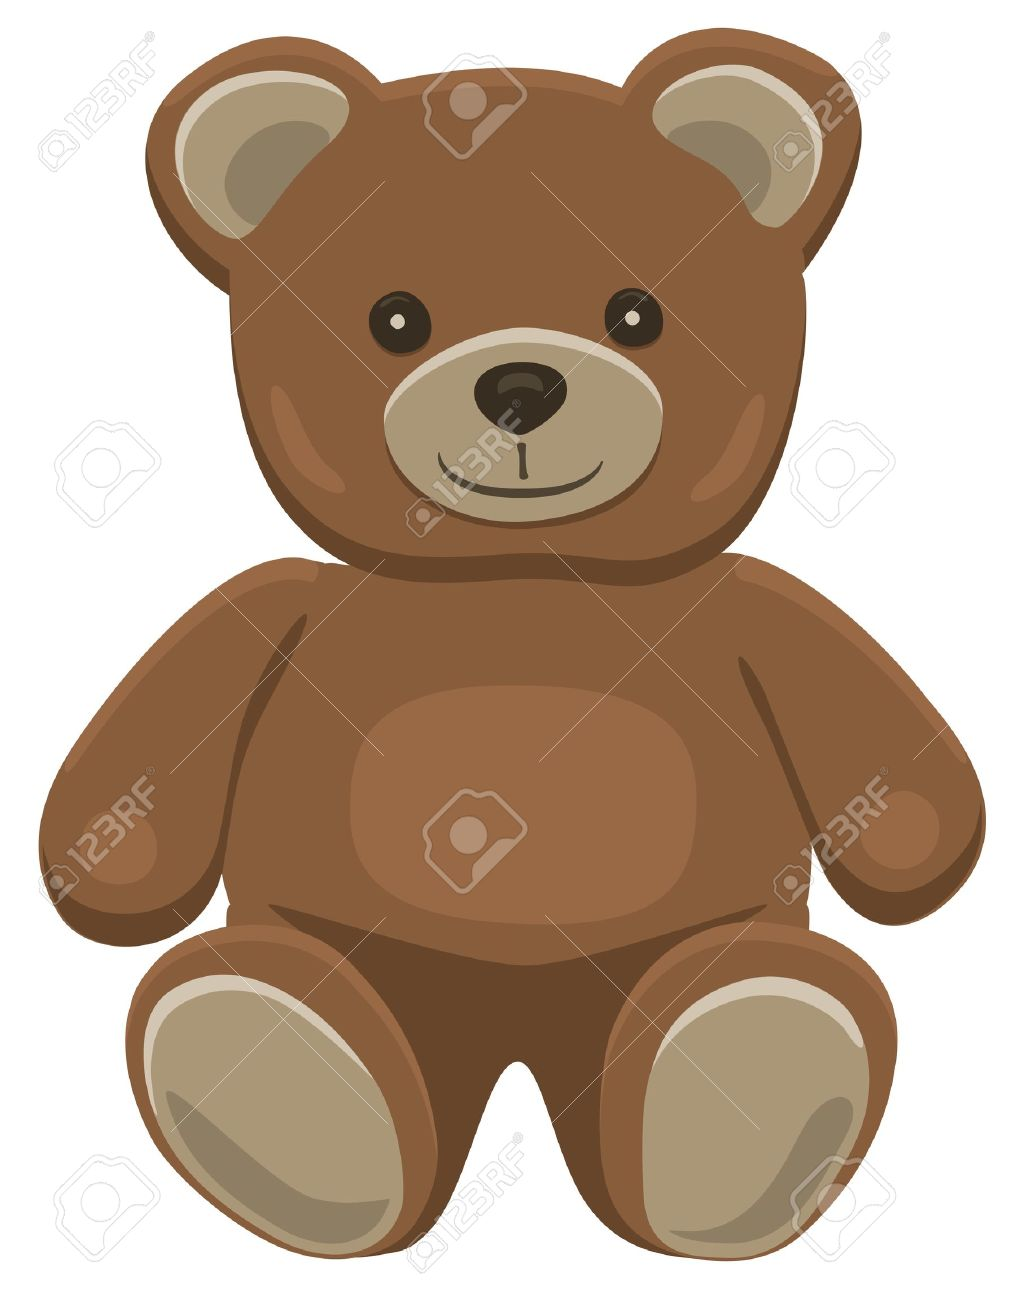 37 274 teddy bear stock illustrations cliparts and royalty free